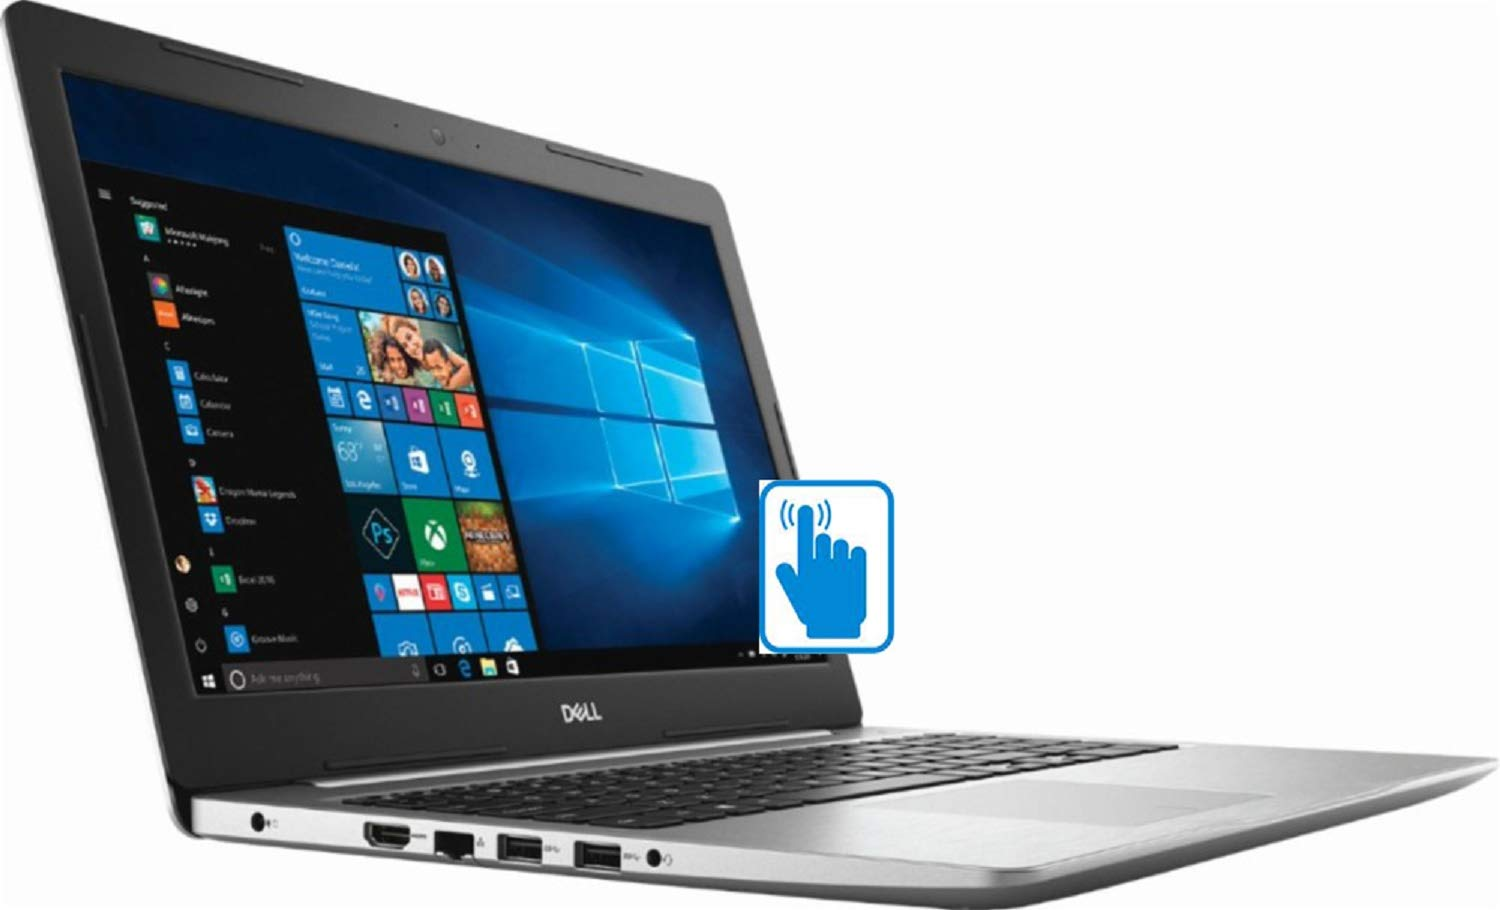 【着後レビューで 送料無料】 Dell Premium Inspiron 15 Touch, Full HD Touchscreen PCIe Premium Home and Business Laptop (AMD Ryzen 5 2500U Quad-Core, 8GB RAM, 1TB HDD + 128GB PCIe SSD, 15.6